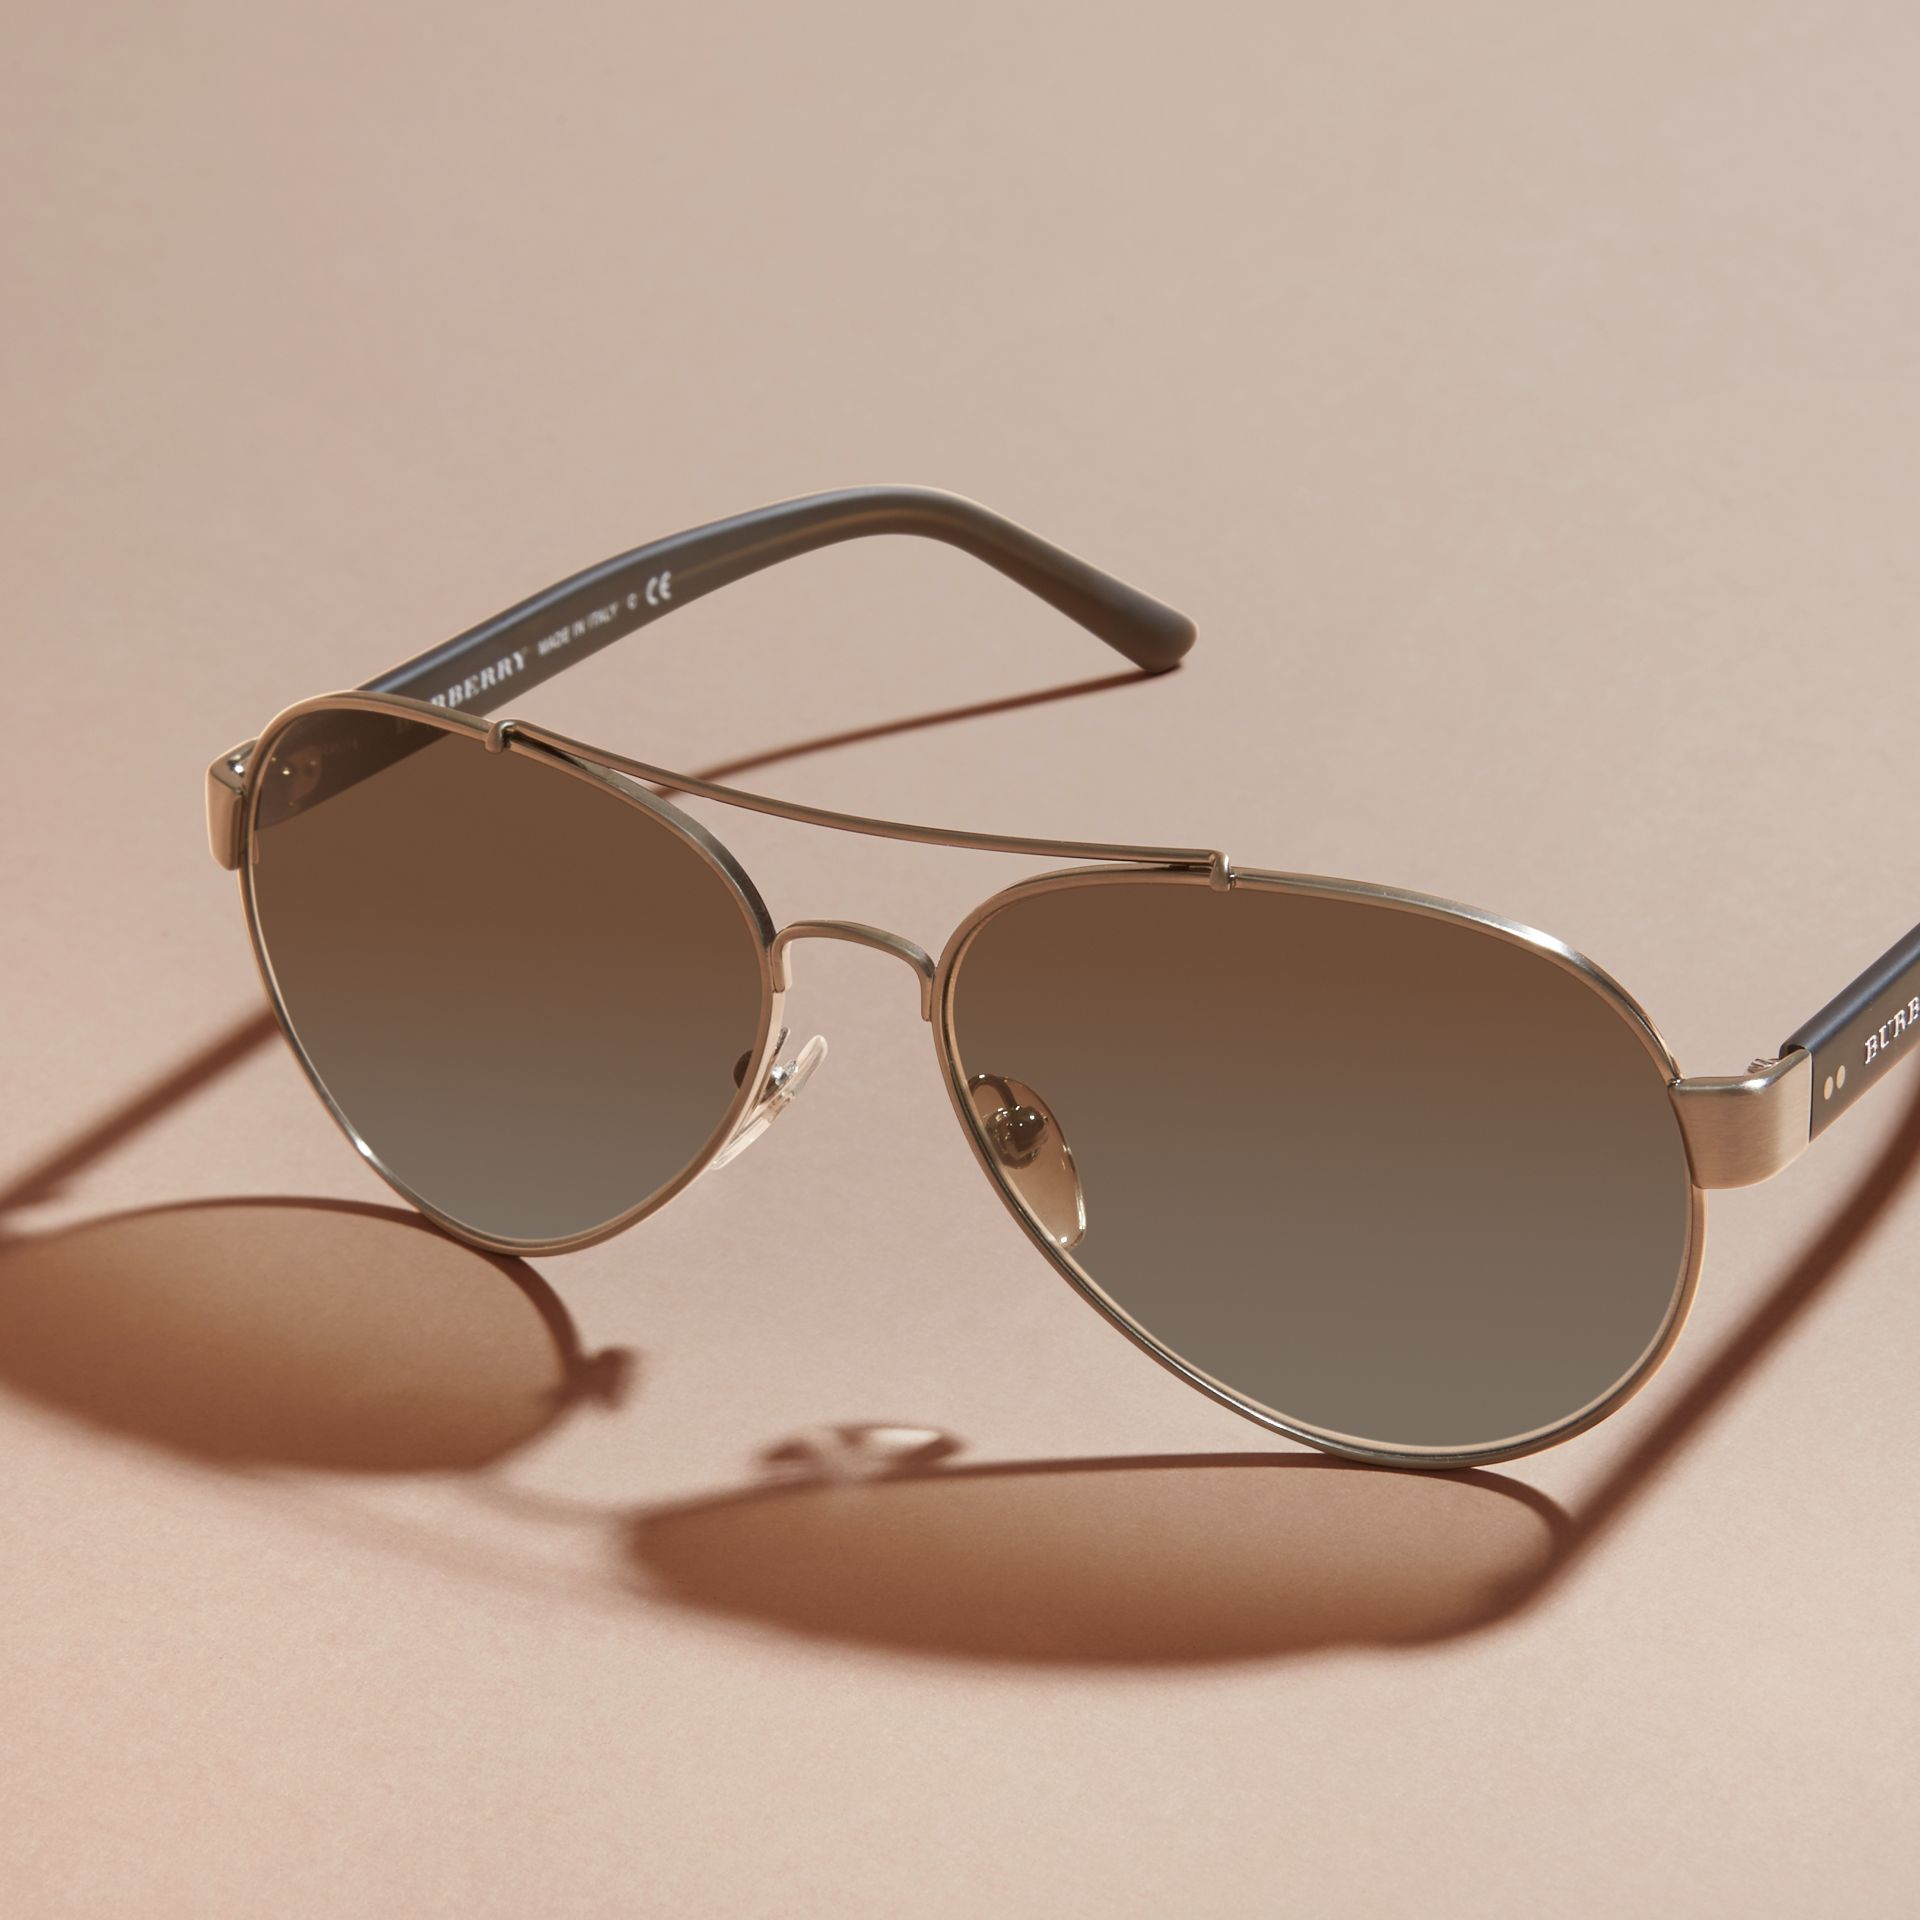 Pilot Sunglasses in Brushed Steel - Men | Burberry - gallery image 3